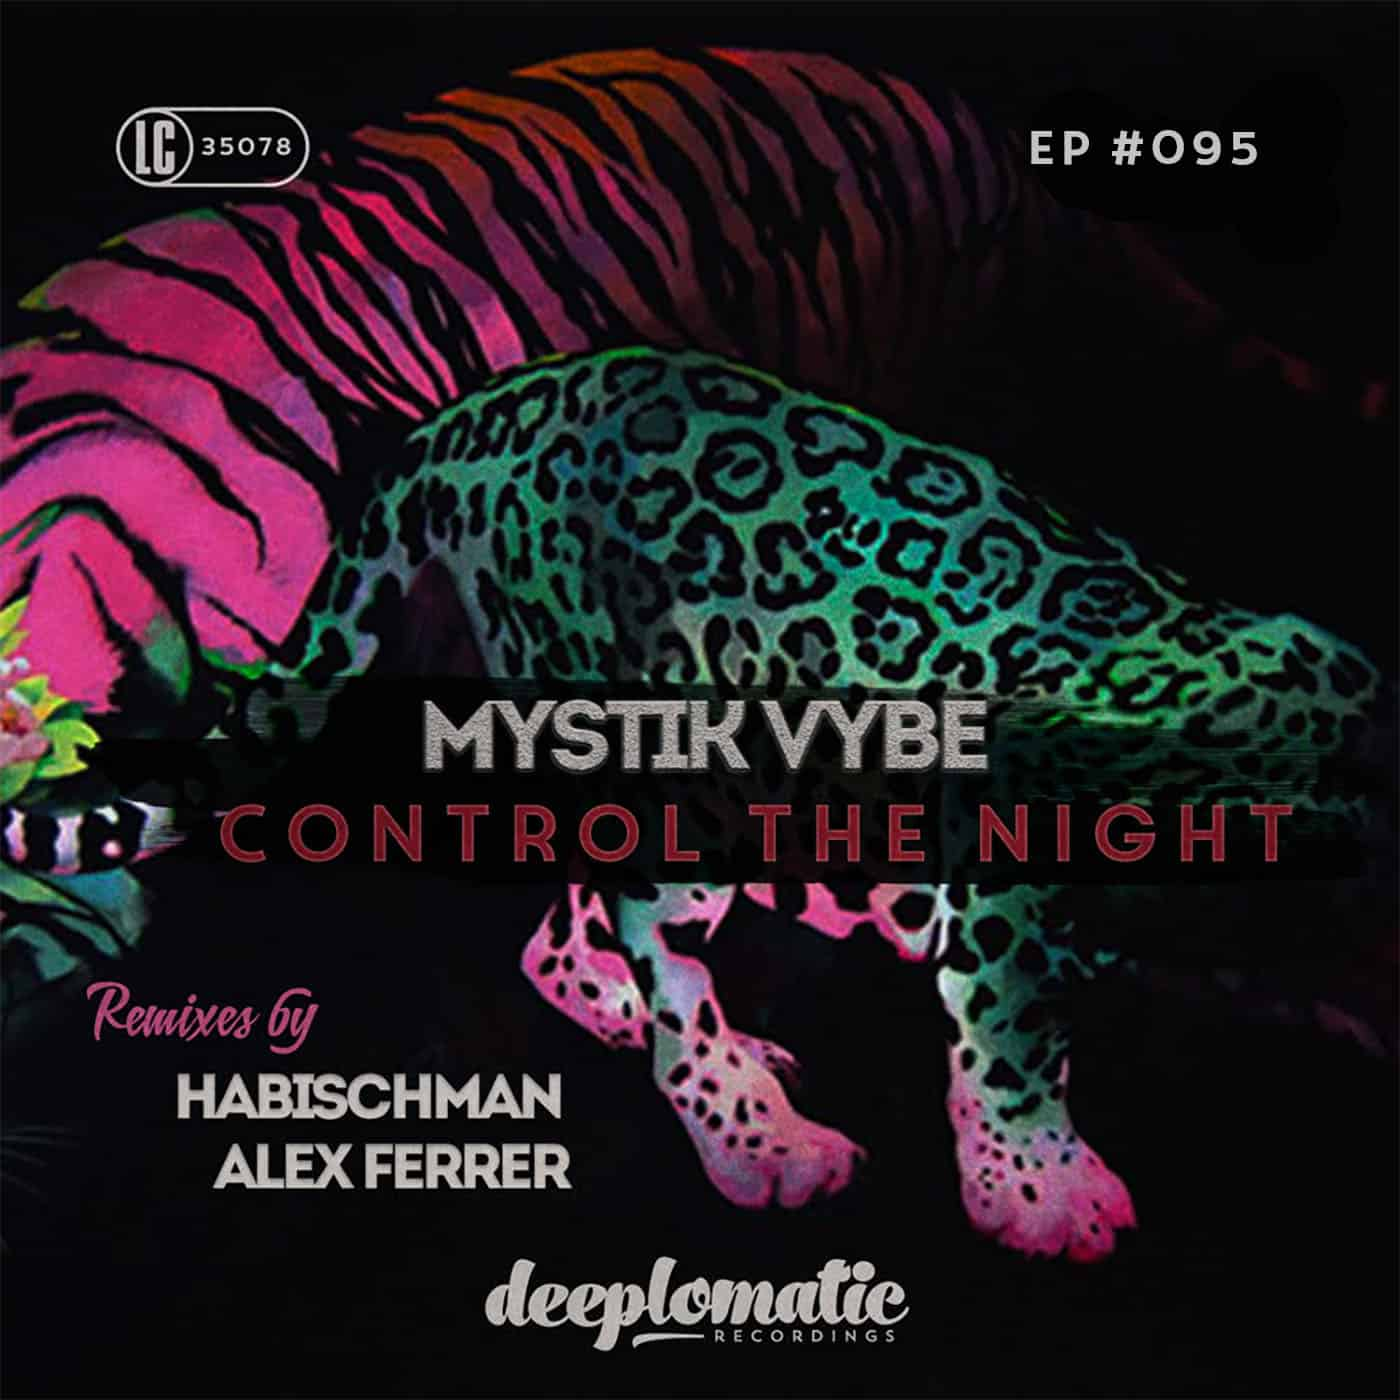 """Habischman & Alex Ferrer remix new Deeplomatic """"Control The Night EP"""" by Mystik Vybe"""